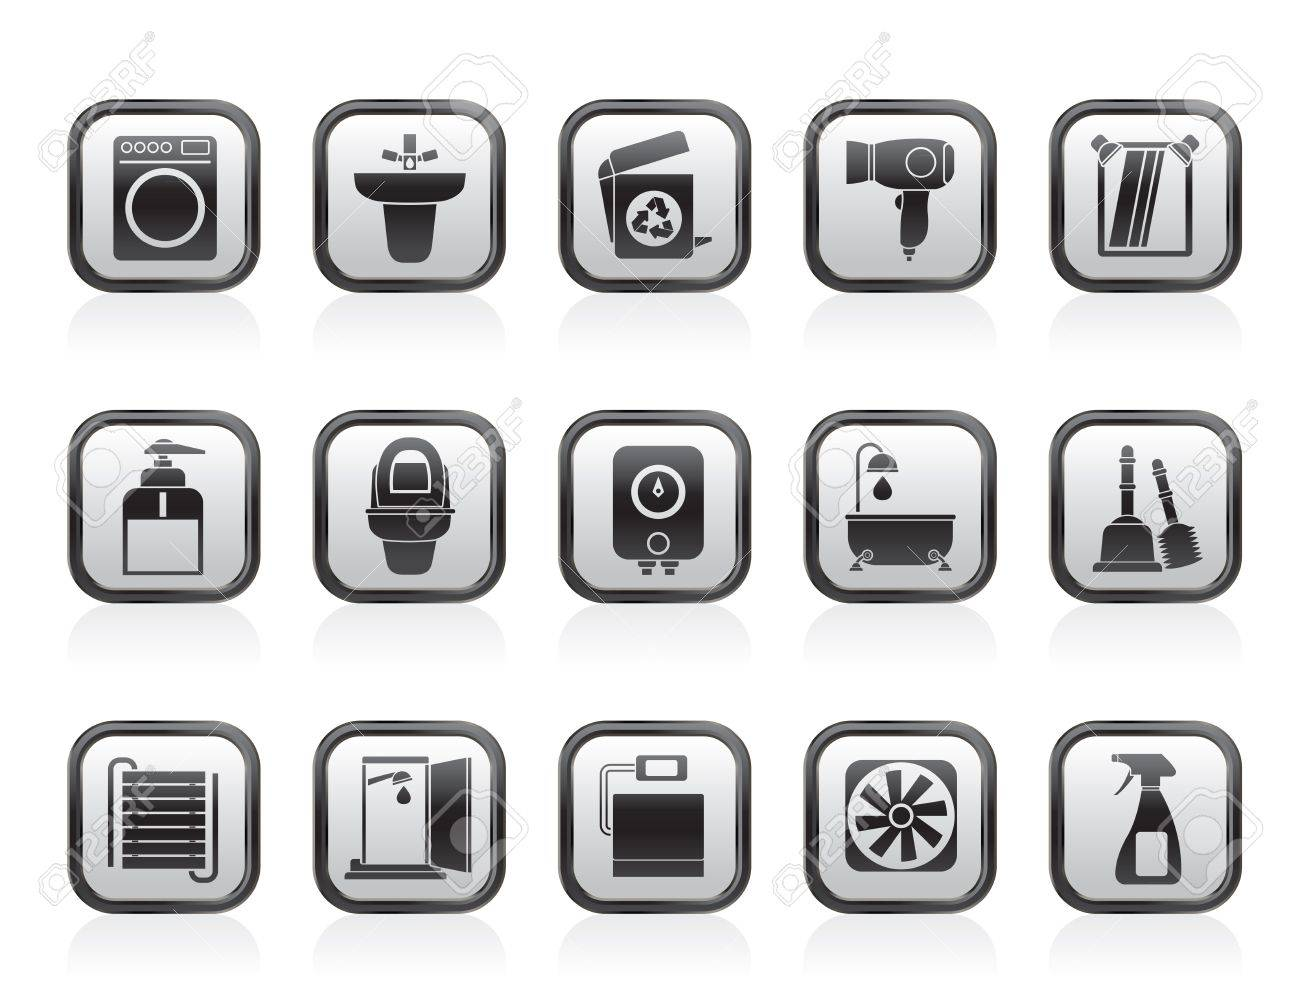 Bathroom and toilet objects and icons - vector icon set Stock Vector - 13709807